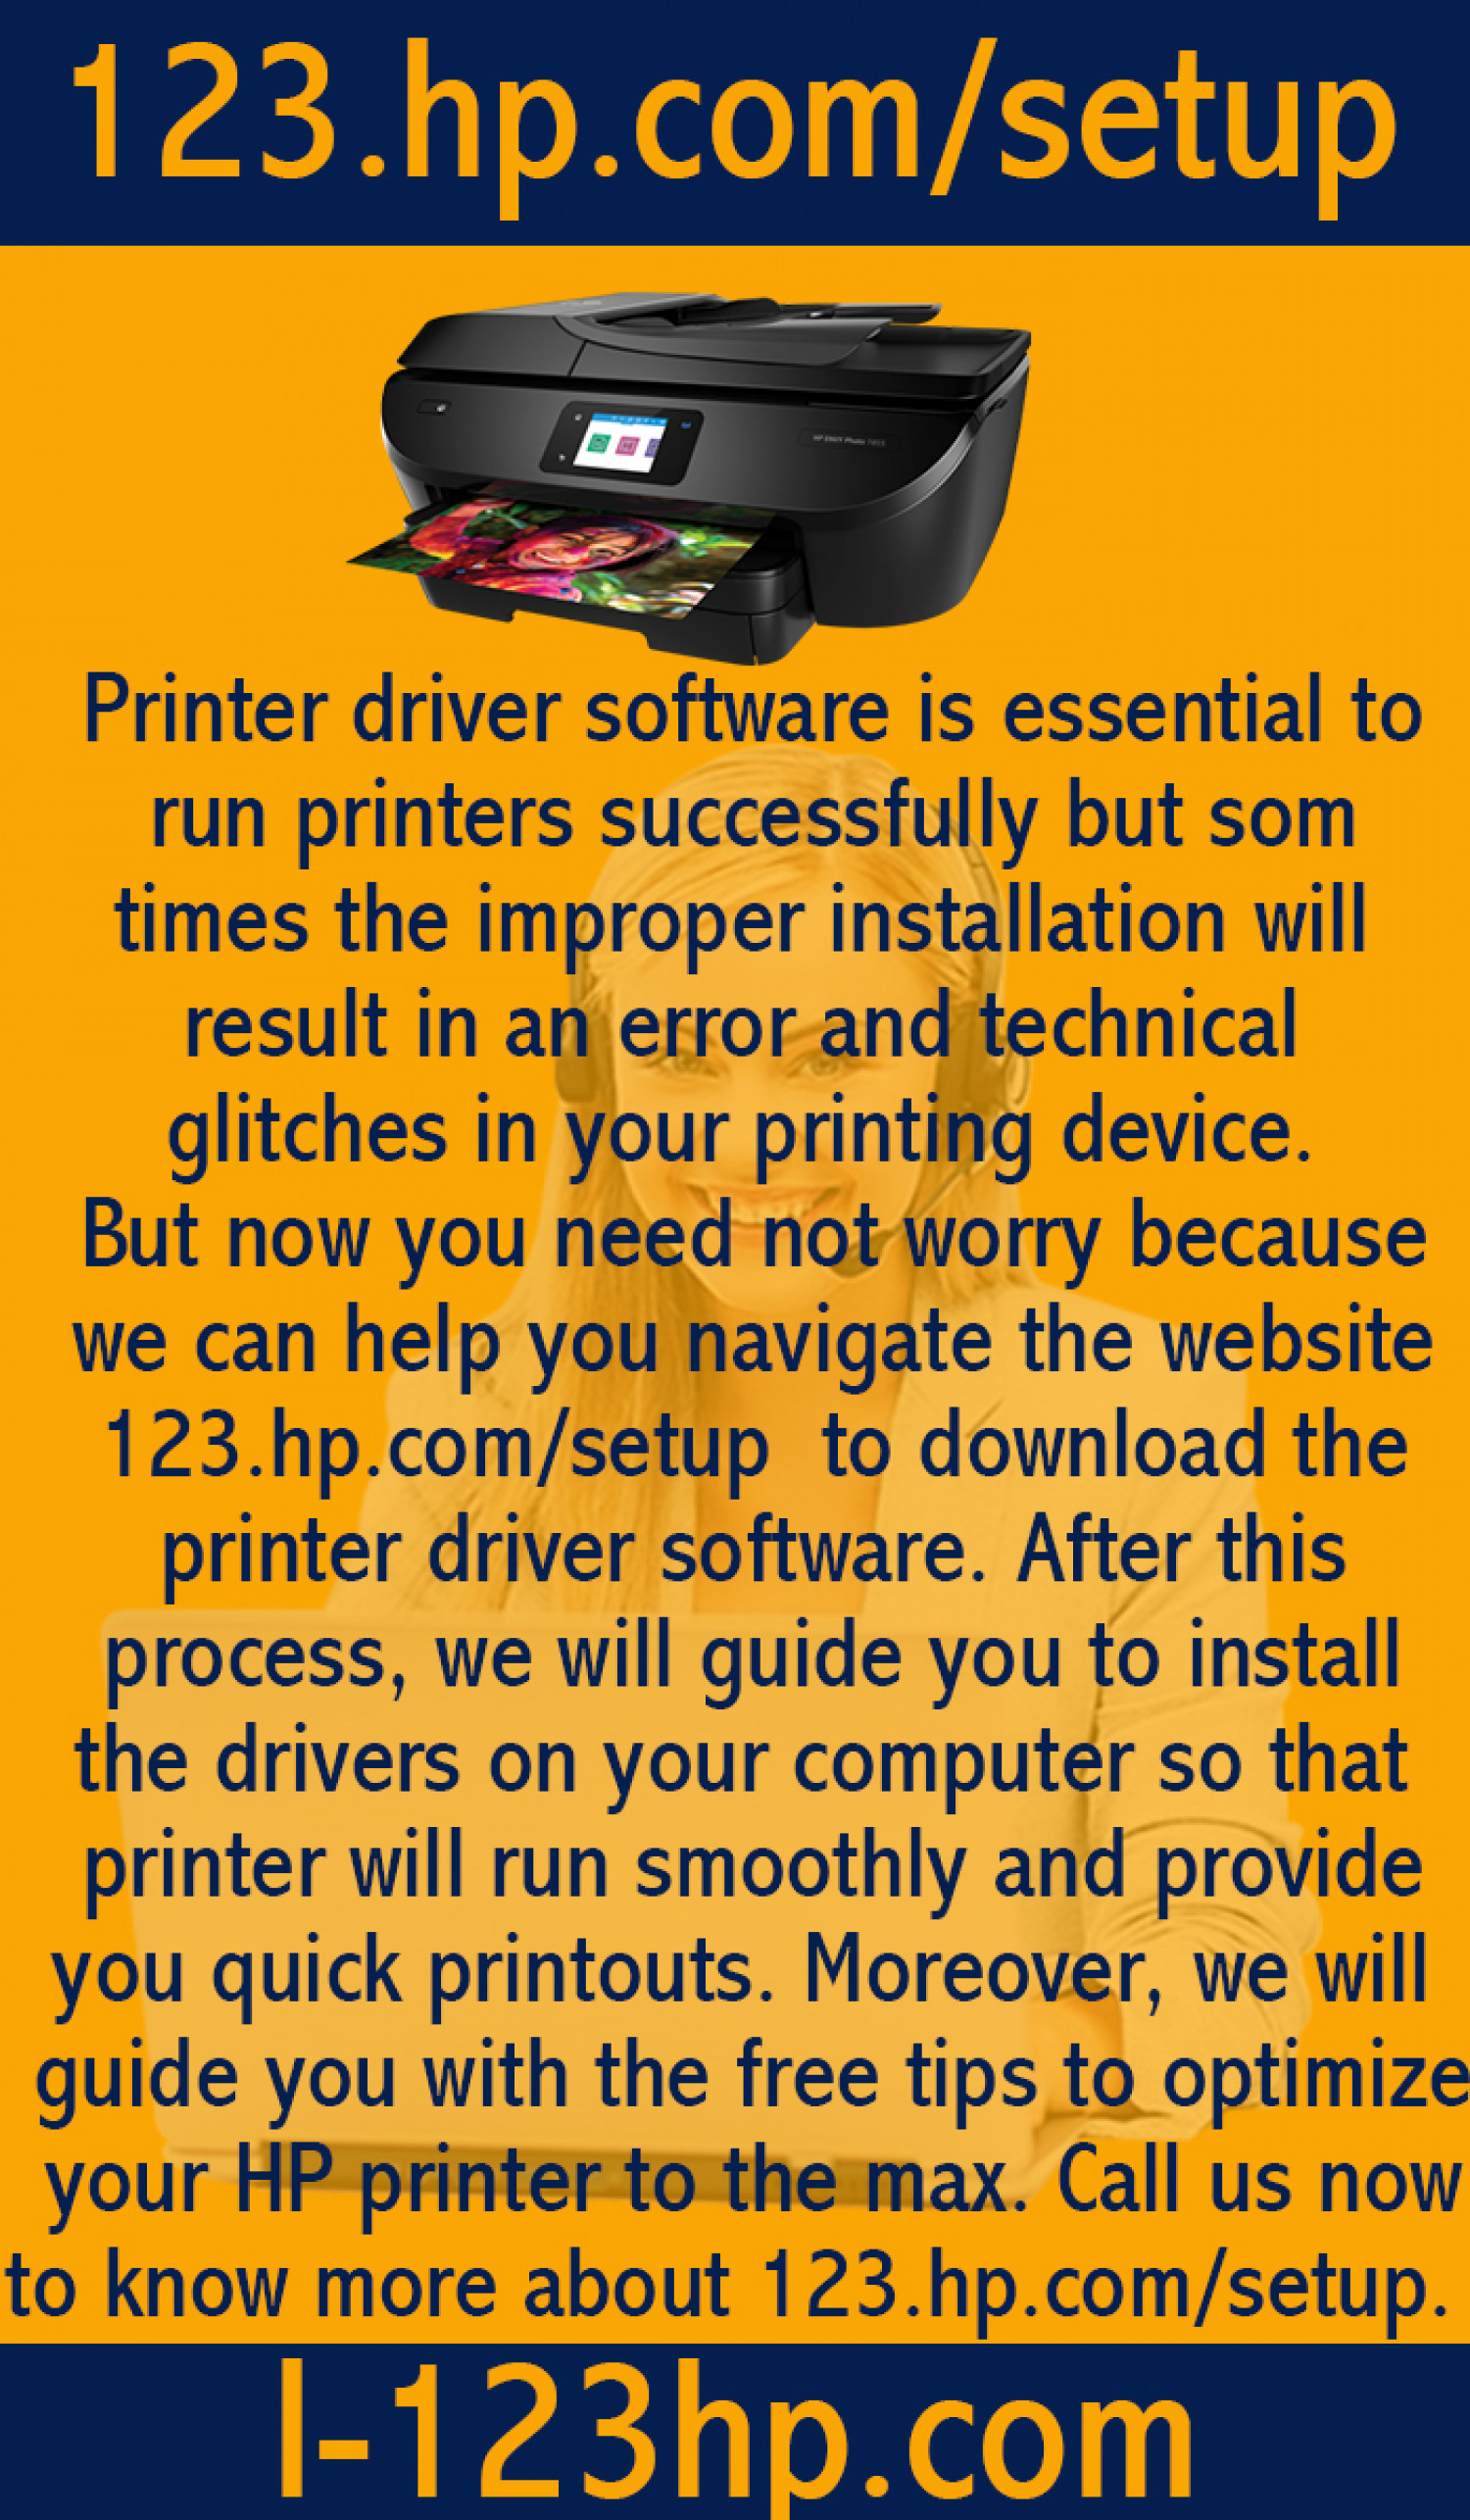 How to download the HP printer driver software? Infographic